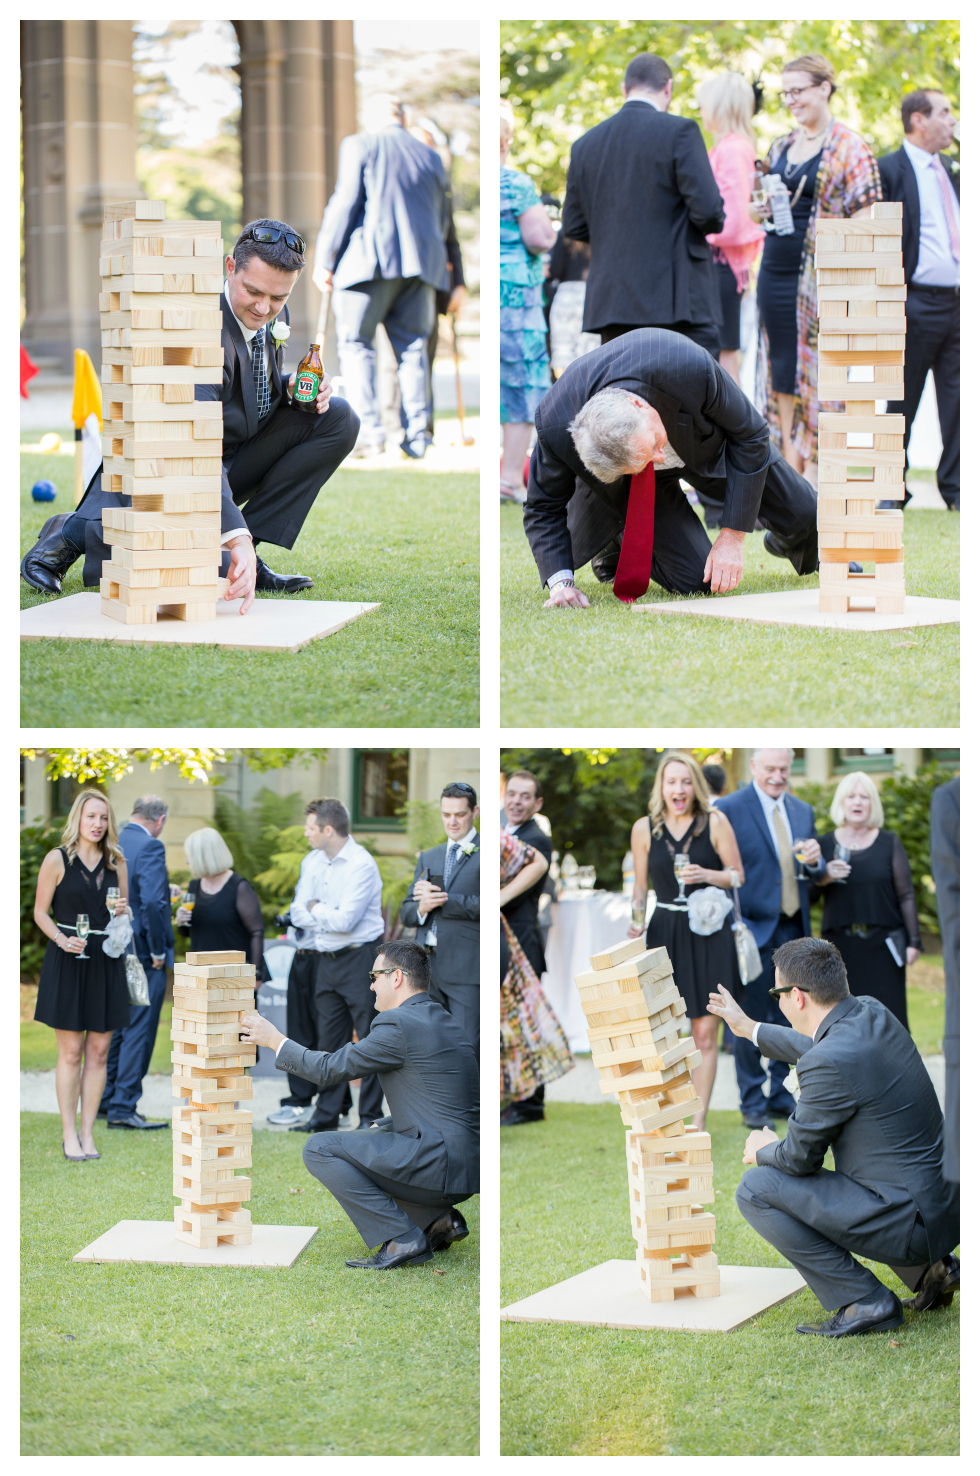 lawn games, wedding games, melbourne wedding photography